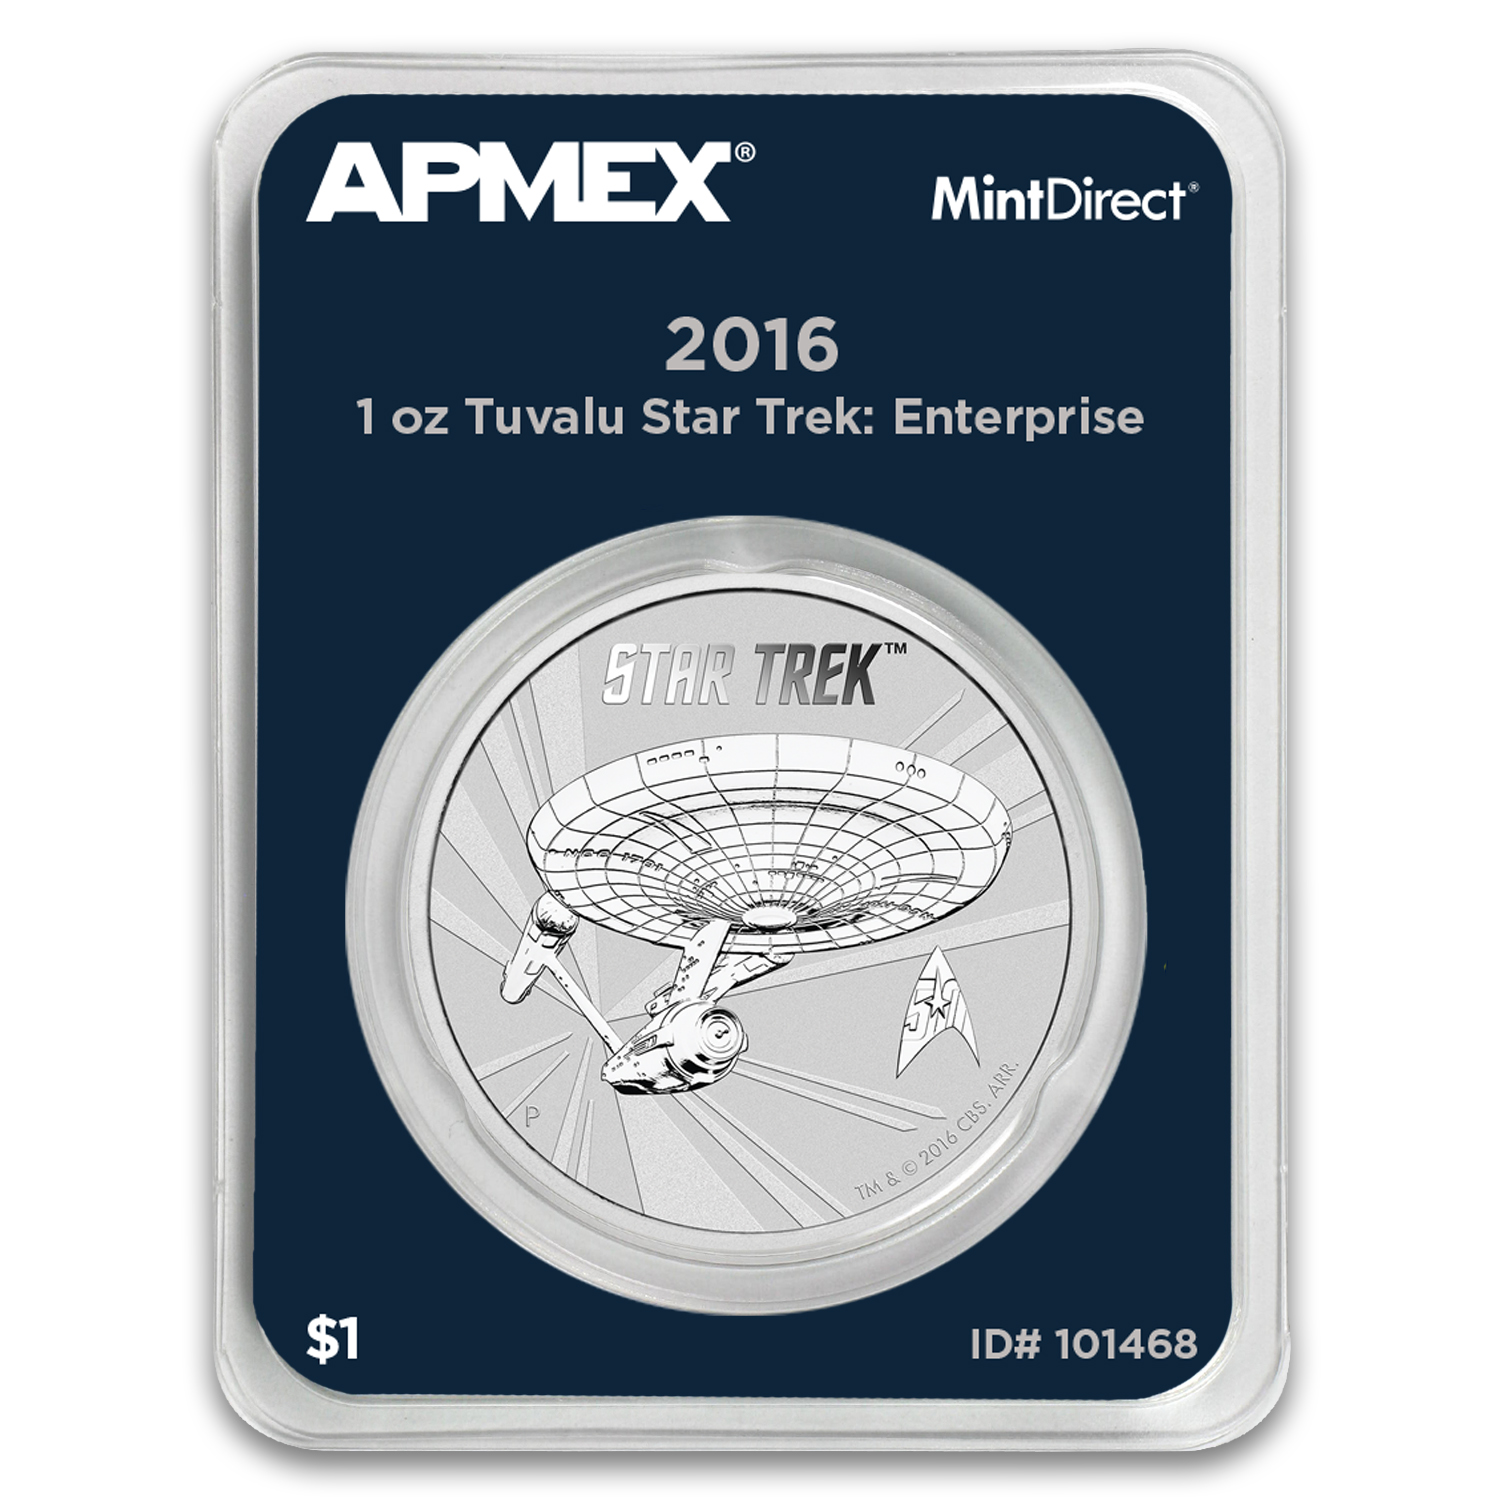 2016 Tuvalu 1 oz Silver Star Trek Enterprise (MintDirect® Single)